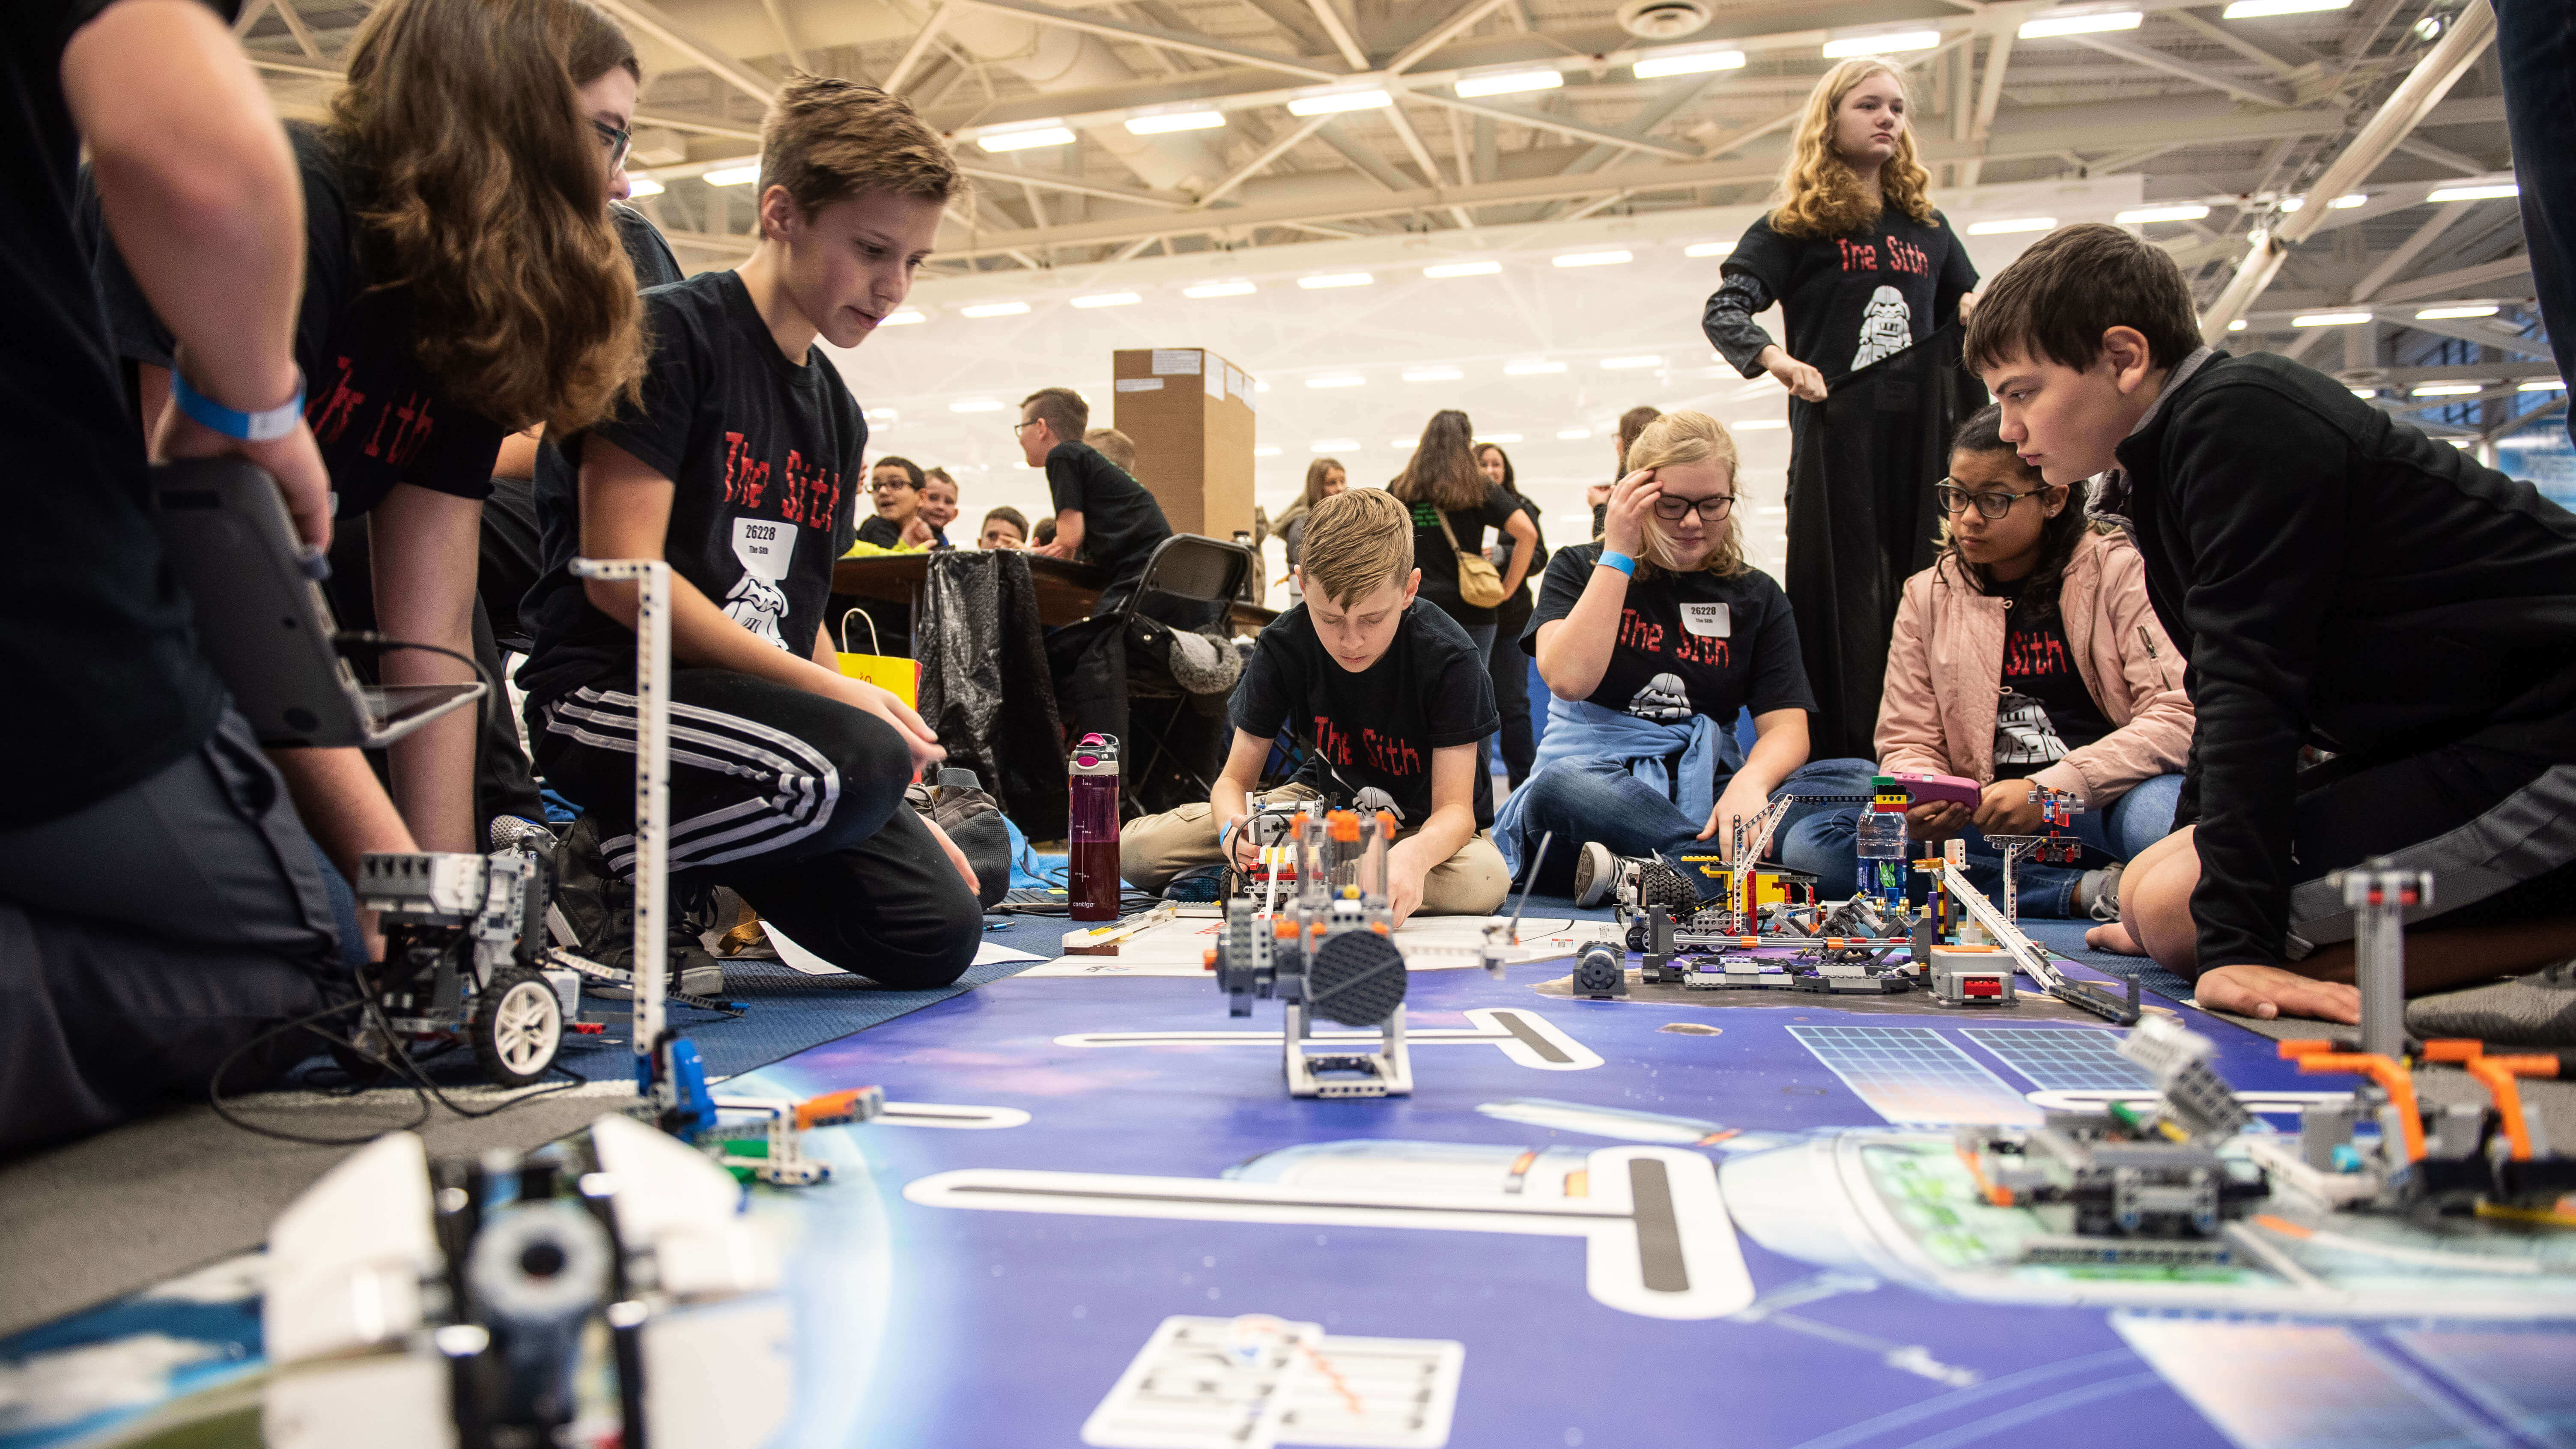 Highschoolers becoming interested in robotics